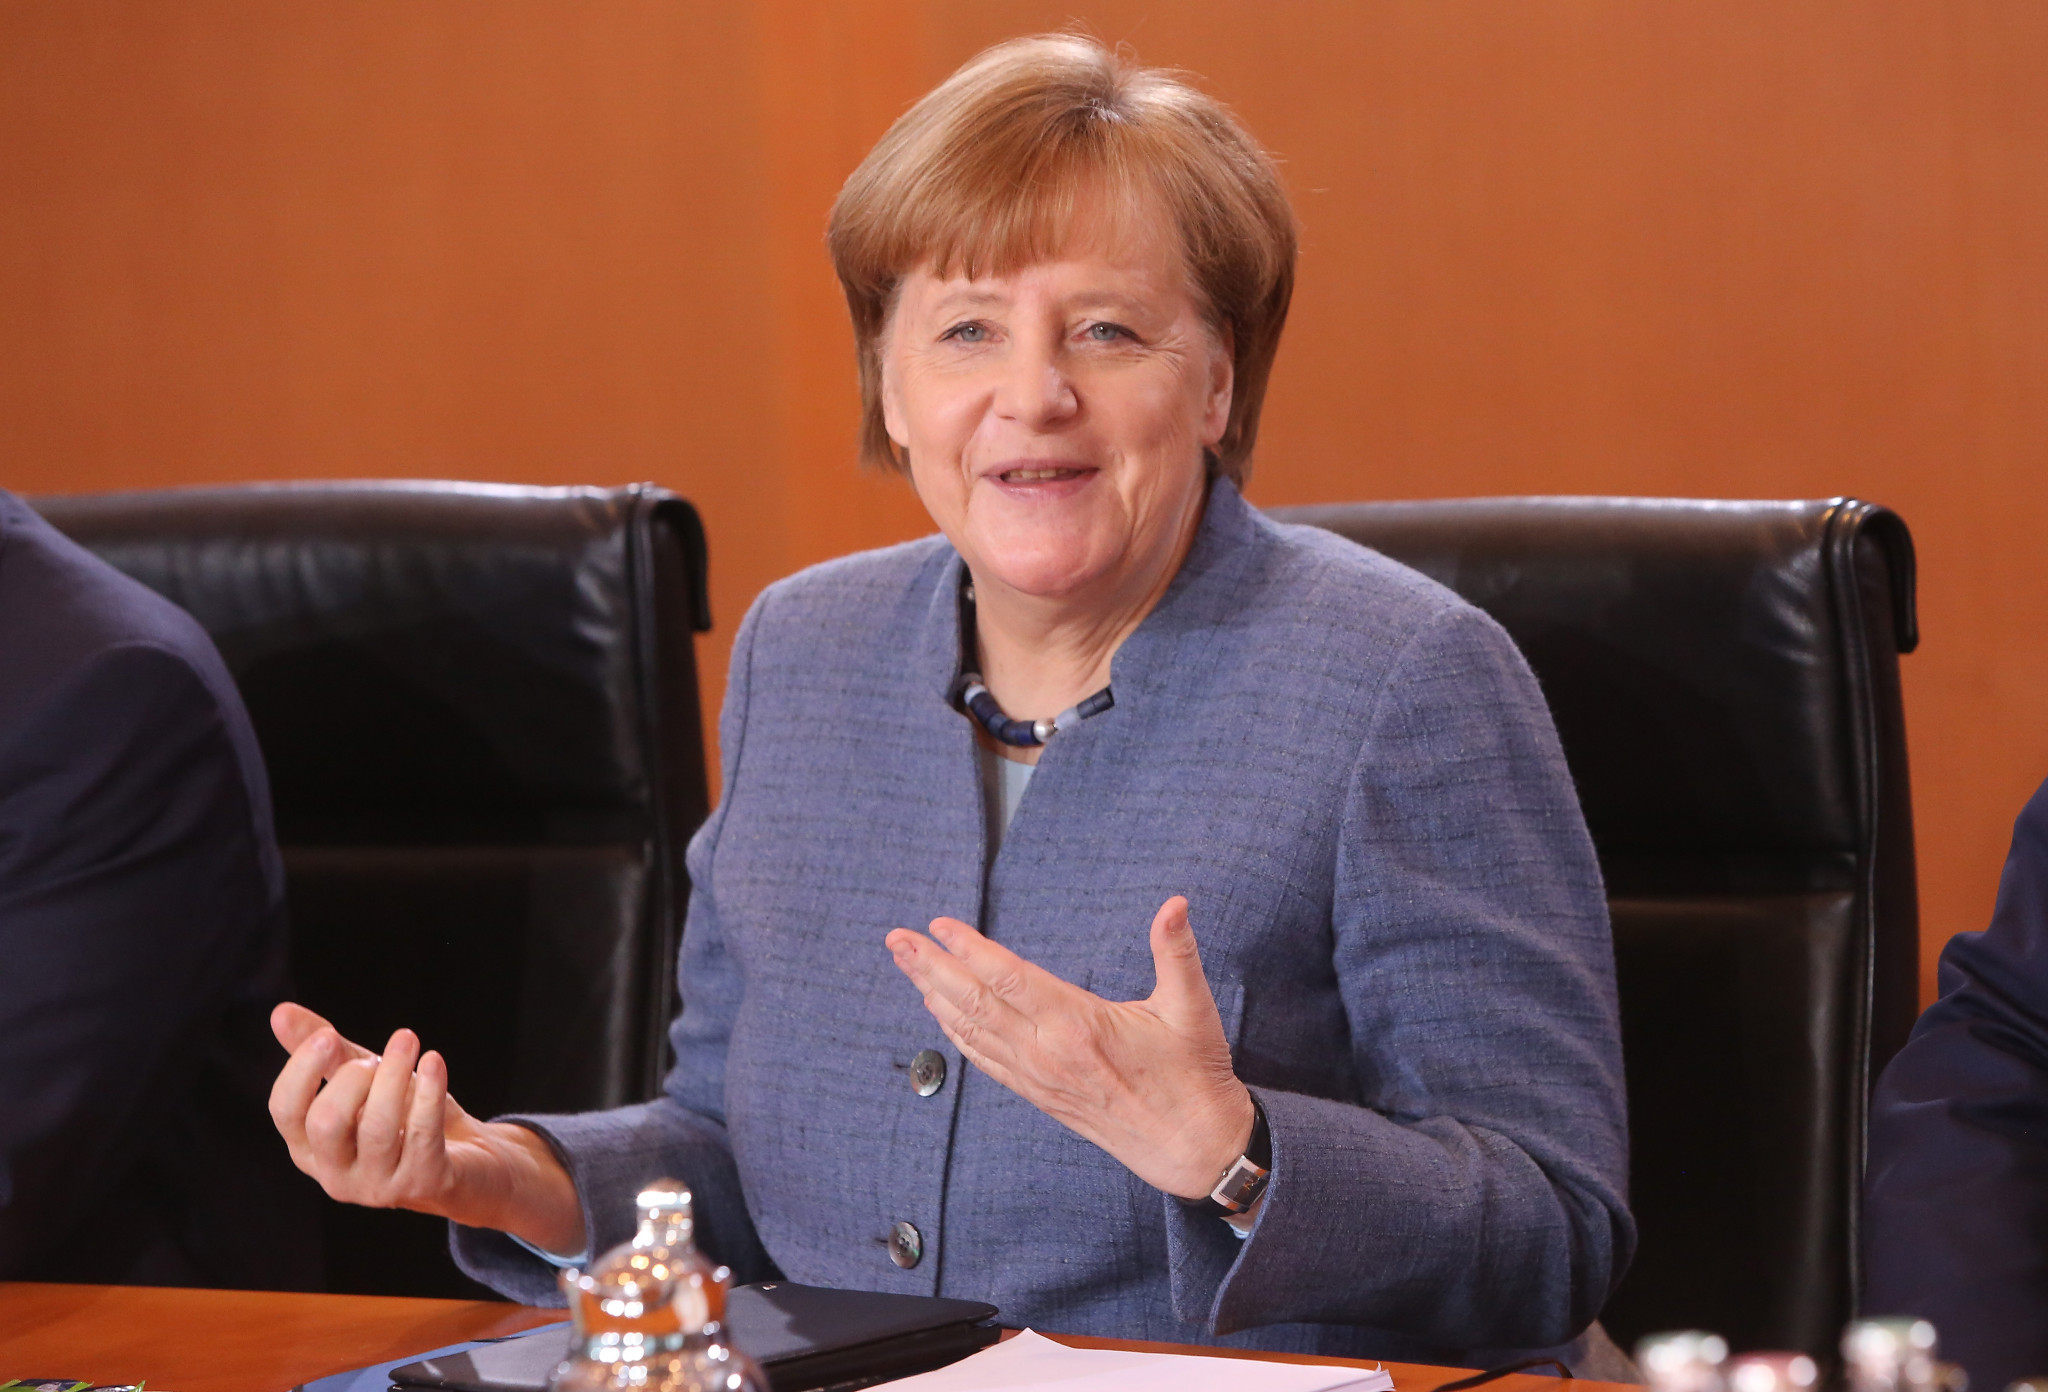 Merkel to be patron of 2019 Luge World Championships